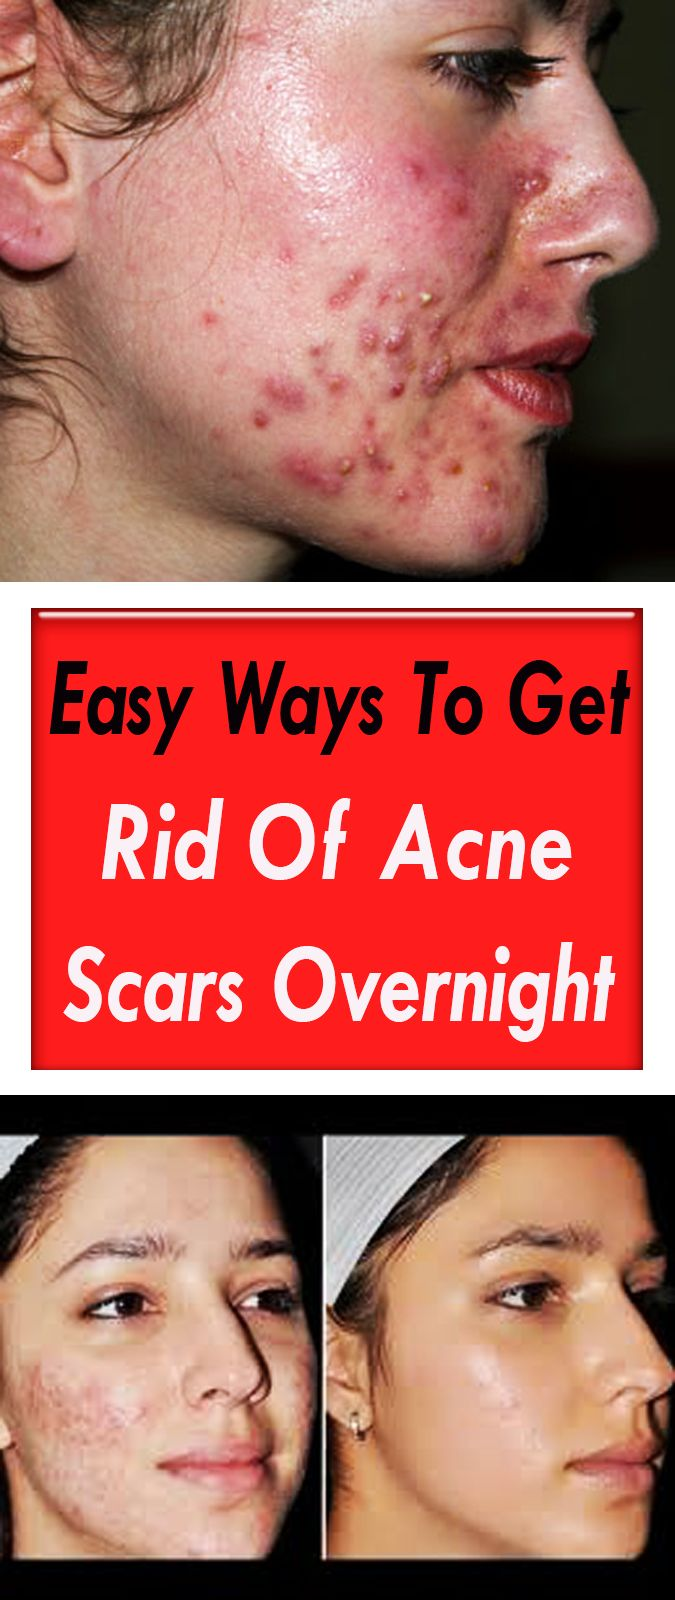 Easy Ways To Get Rid Of Acne Scars Overnight